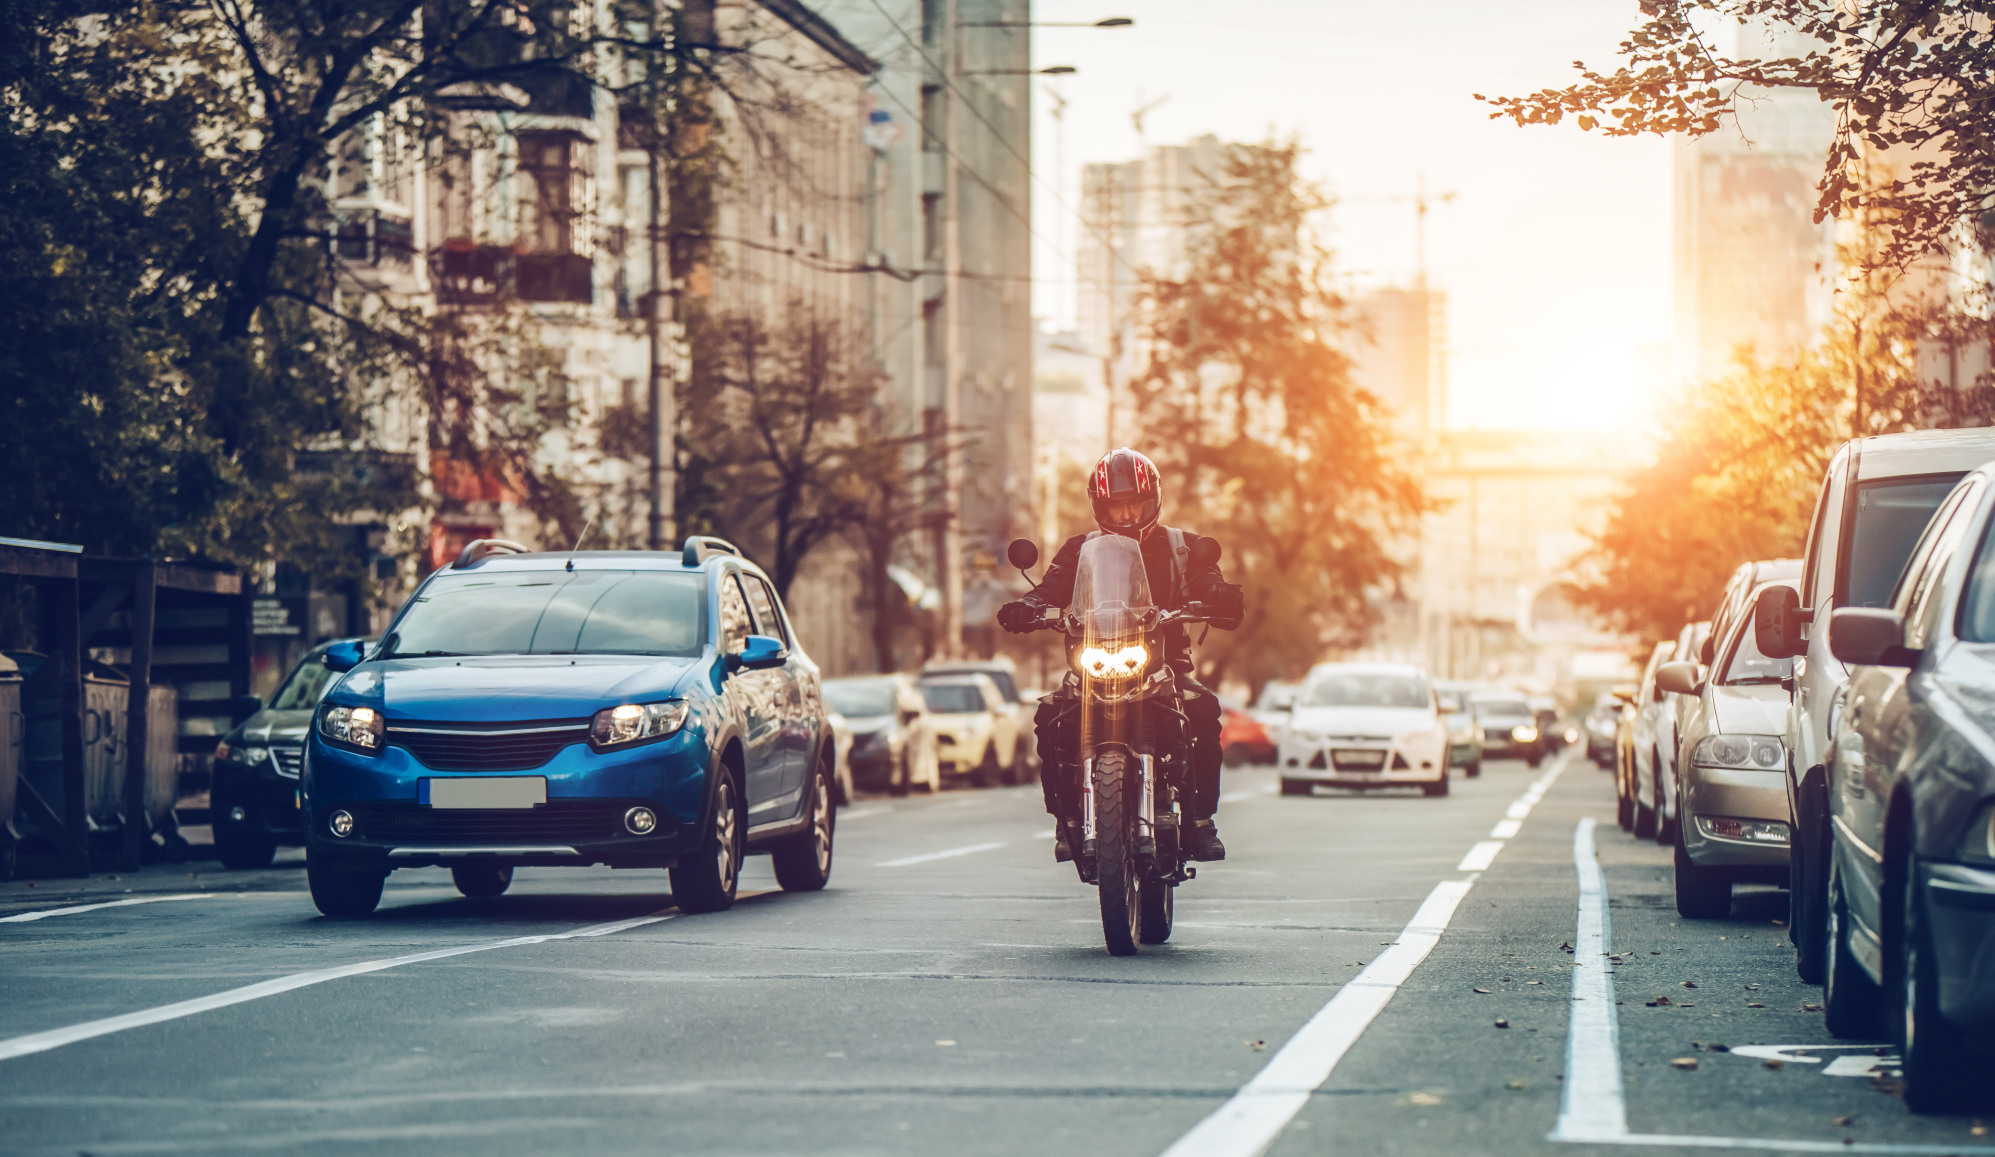 Motorcycle riding down street with parked cars on riders left and moving vehicle on rider's right